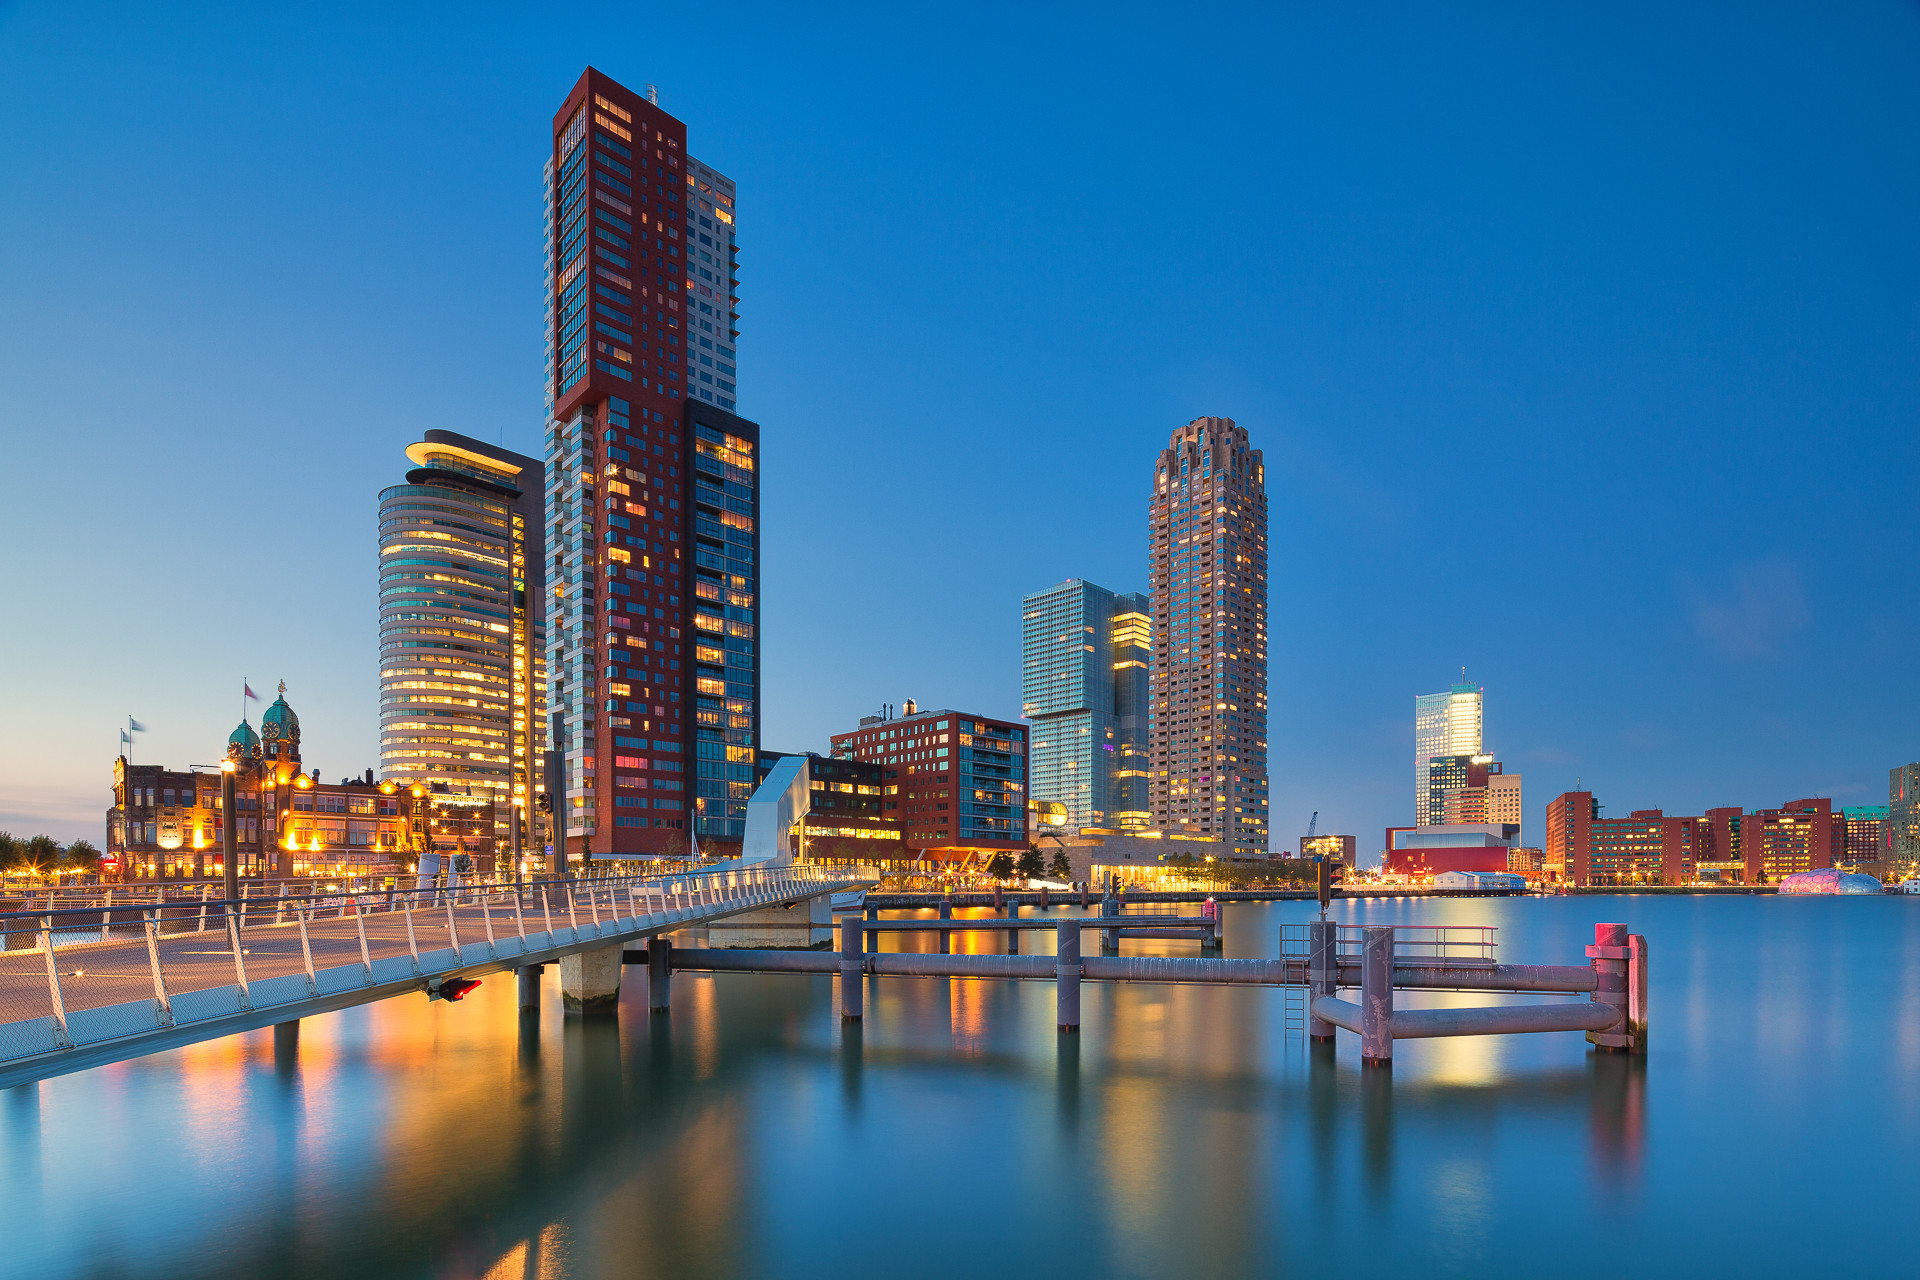 A dramatic citycape of skyscrapers in Rotterdam, The Netherlands